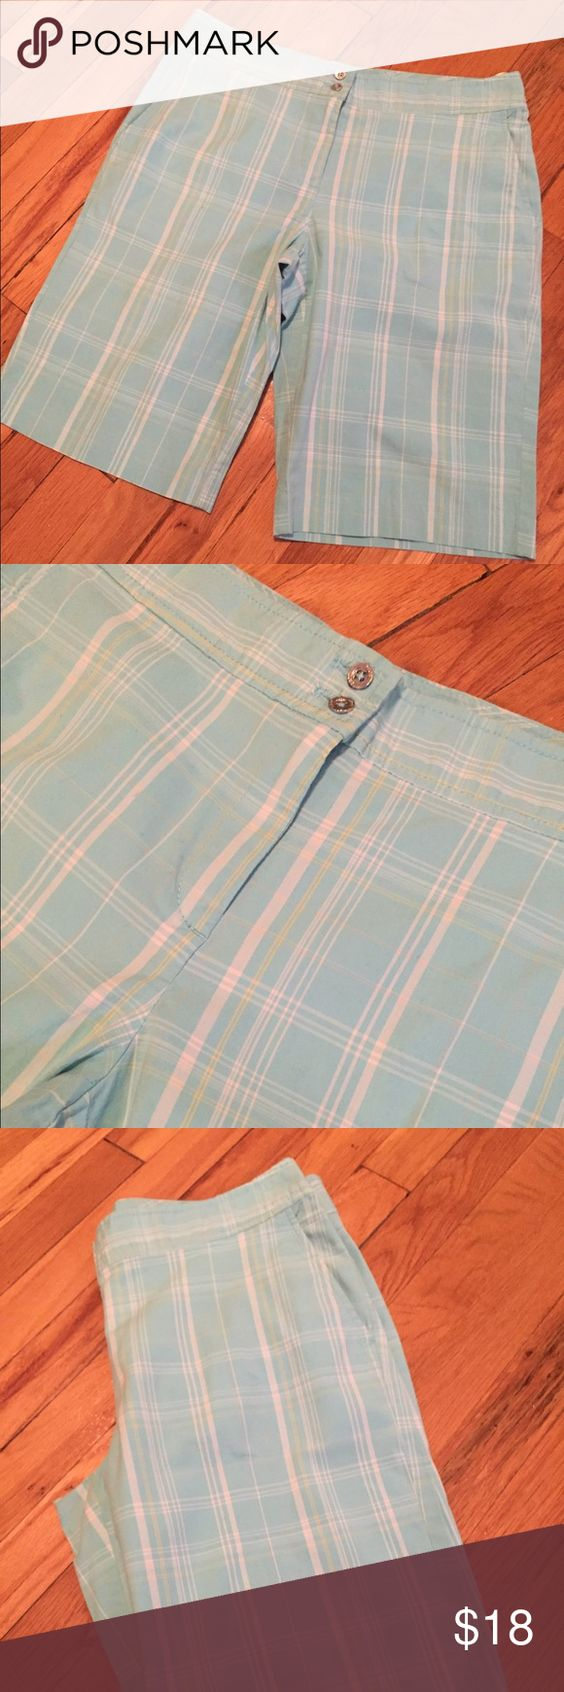 IZOD Bermuda shorts Worn once. Great color for the summer Izod Shorts Bermudas